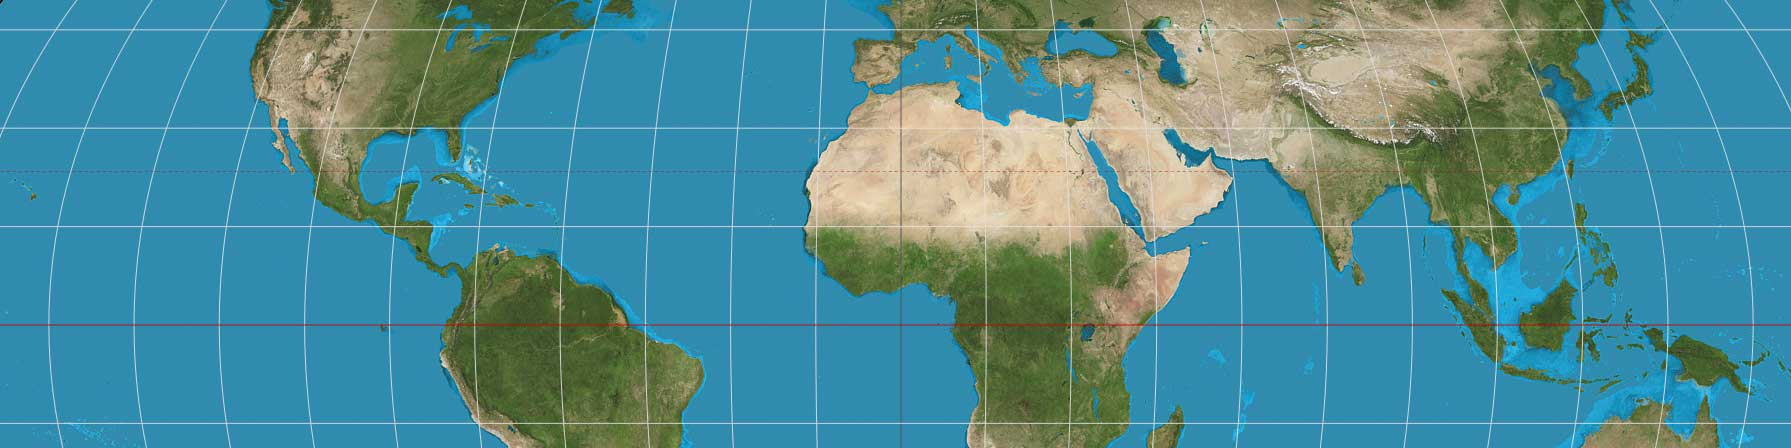 Map projections flattening the earth mrdowling gumiabroncs Image collections